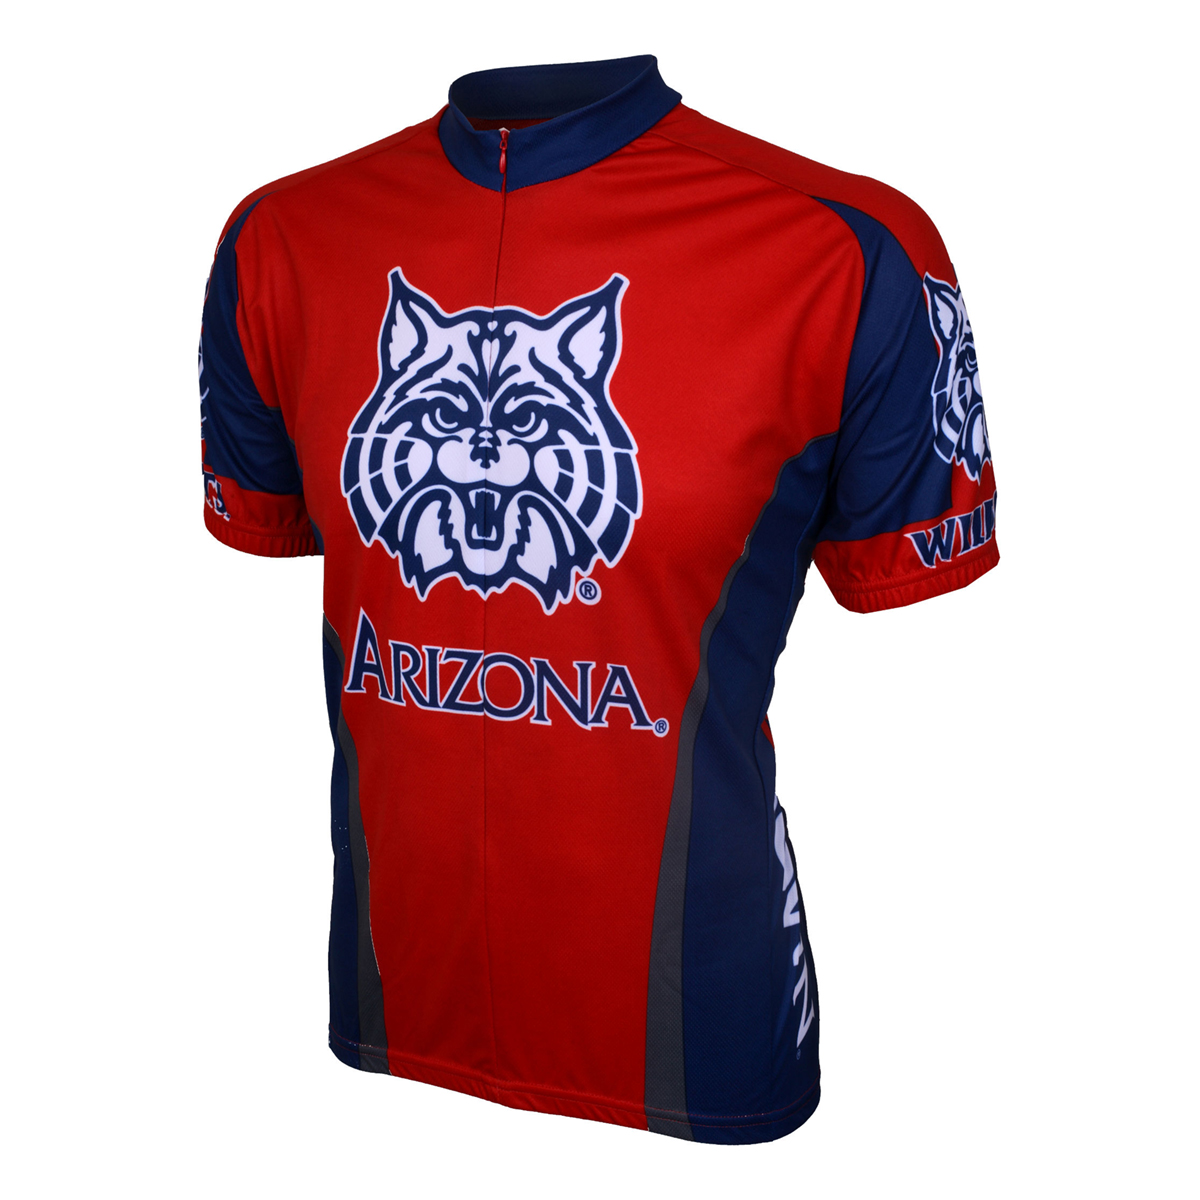 Adrenaline Promotions University of Arizona Wildcats Cycling Jersey